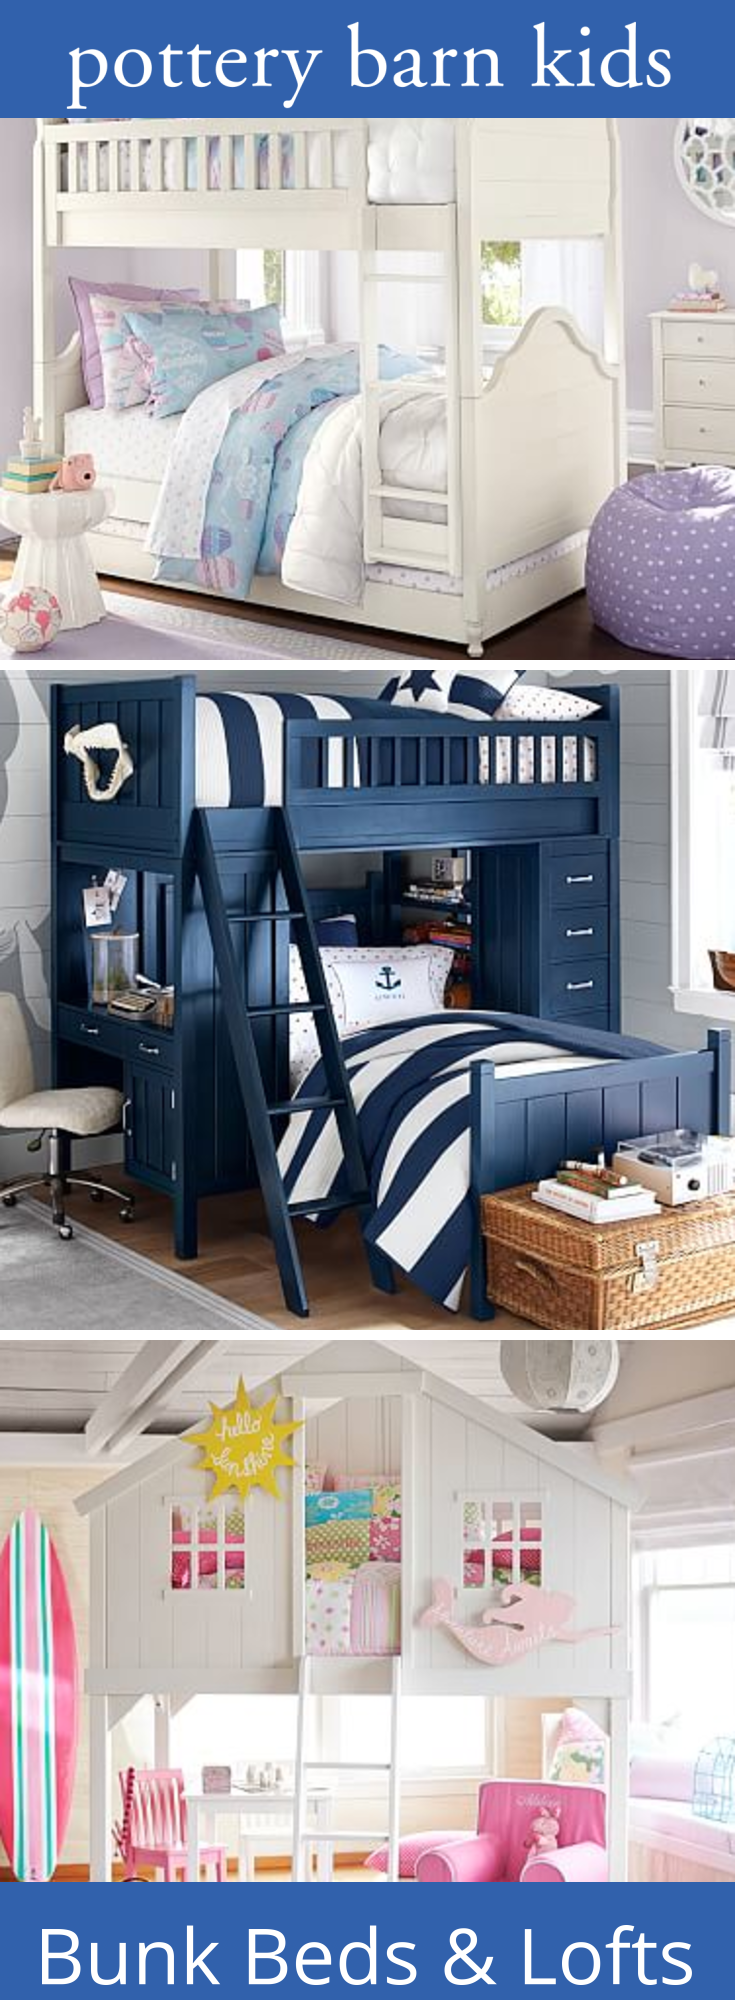 Pottery barn loft bed with desk  Bunk Beds u Lofts  Girls room  Pinterest  Bunk bed Lofts and Room